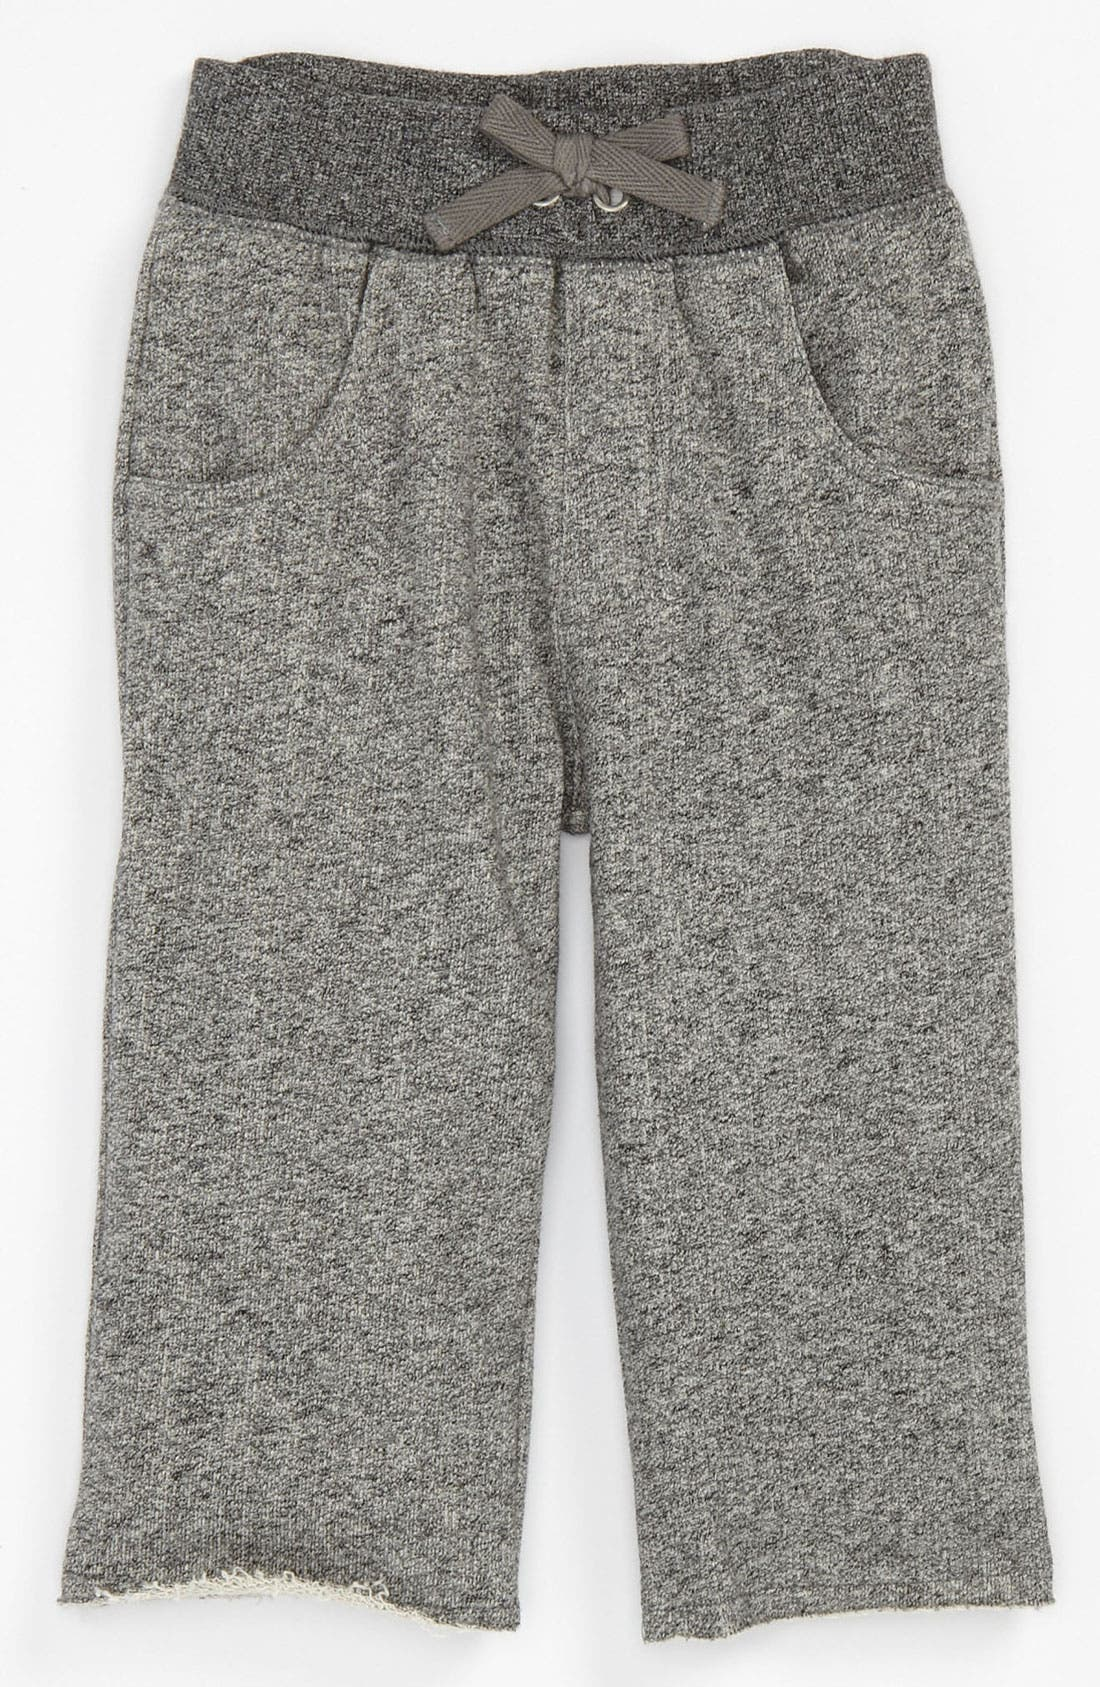 Alternate Image 1 Selected - Peek 'Caiden' Pants (Infant)